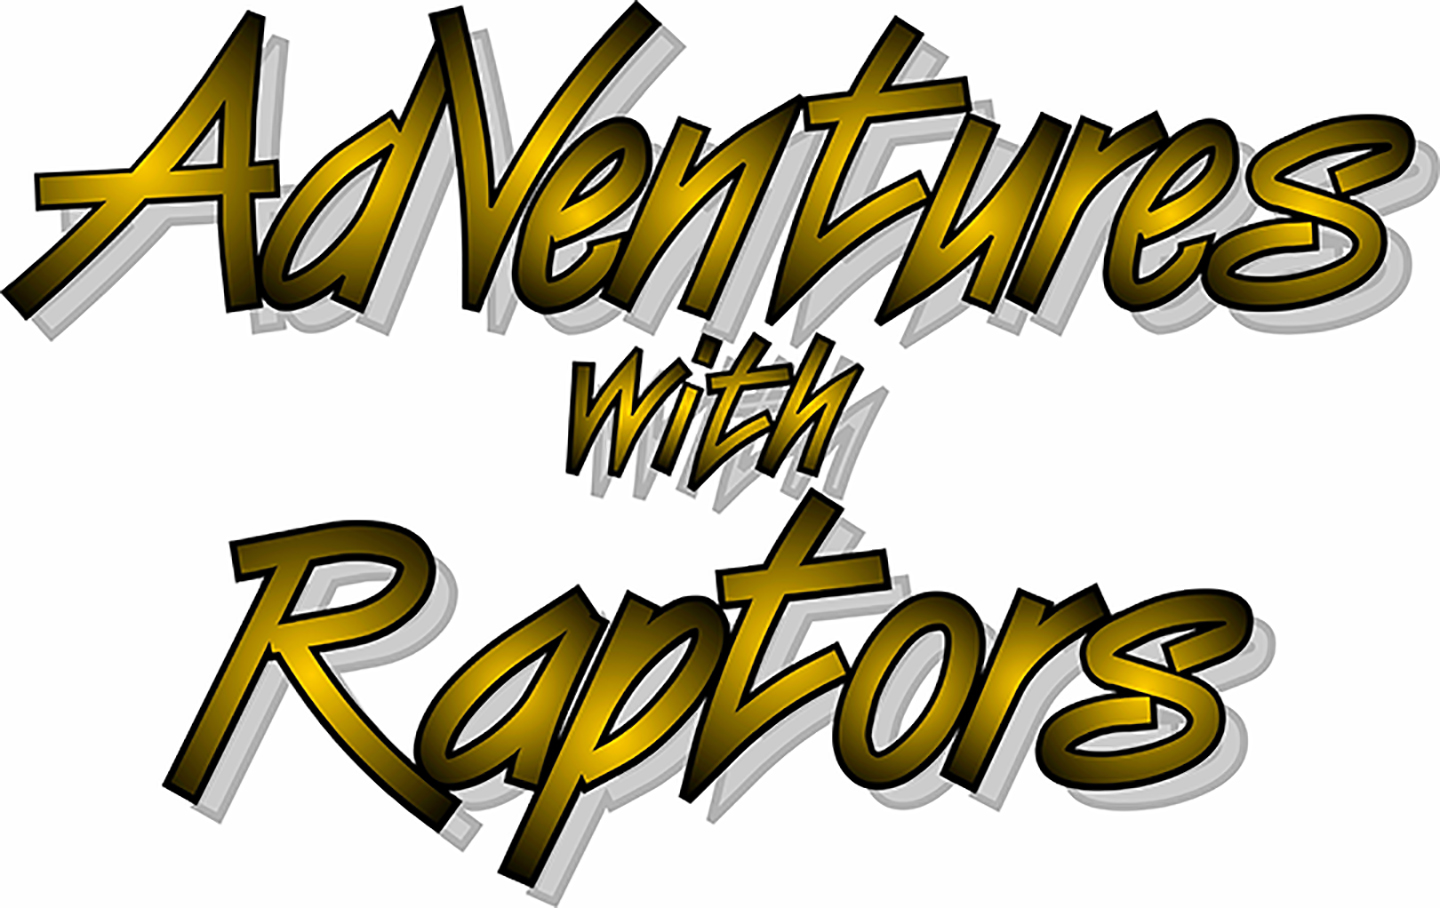 Adventures with Raptors